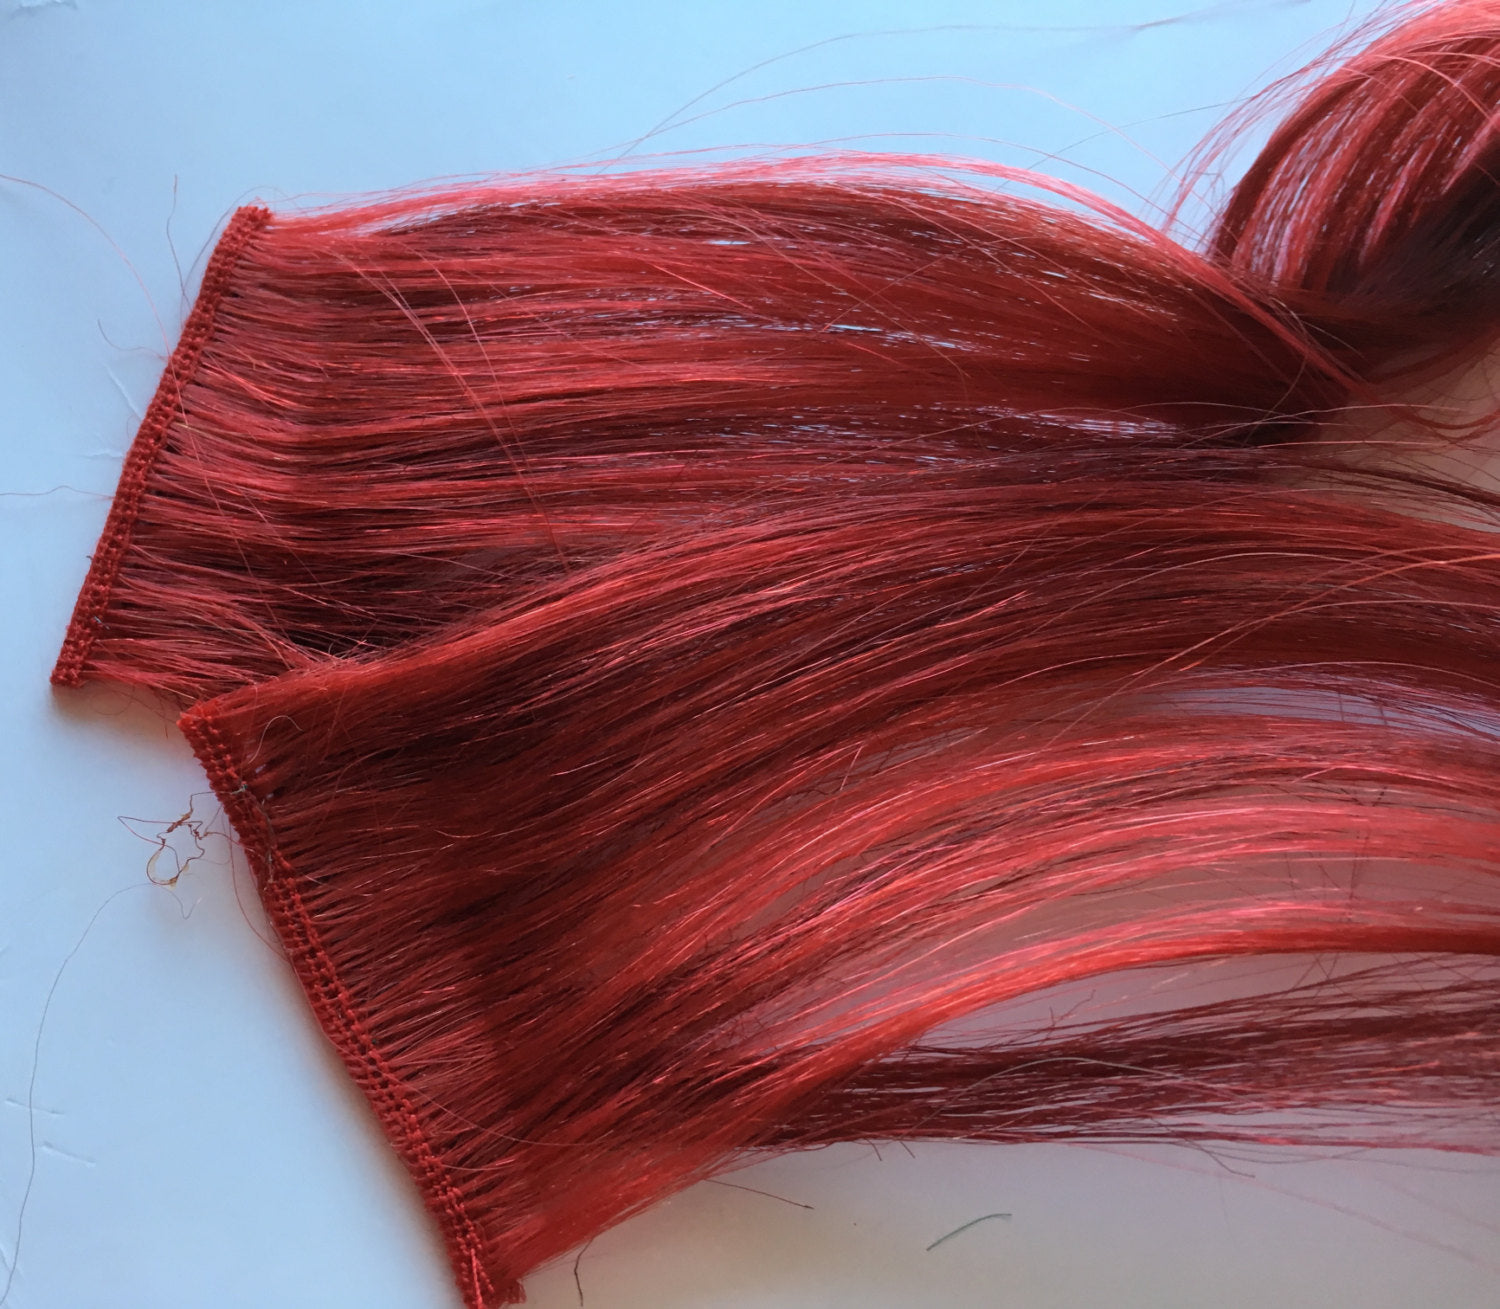 16-18 inch 100% Human Hair Extensions Bright Red and Burgundy Clip in or Tape style